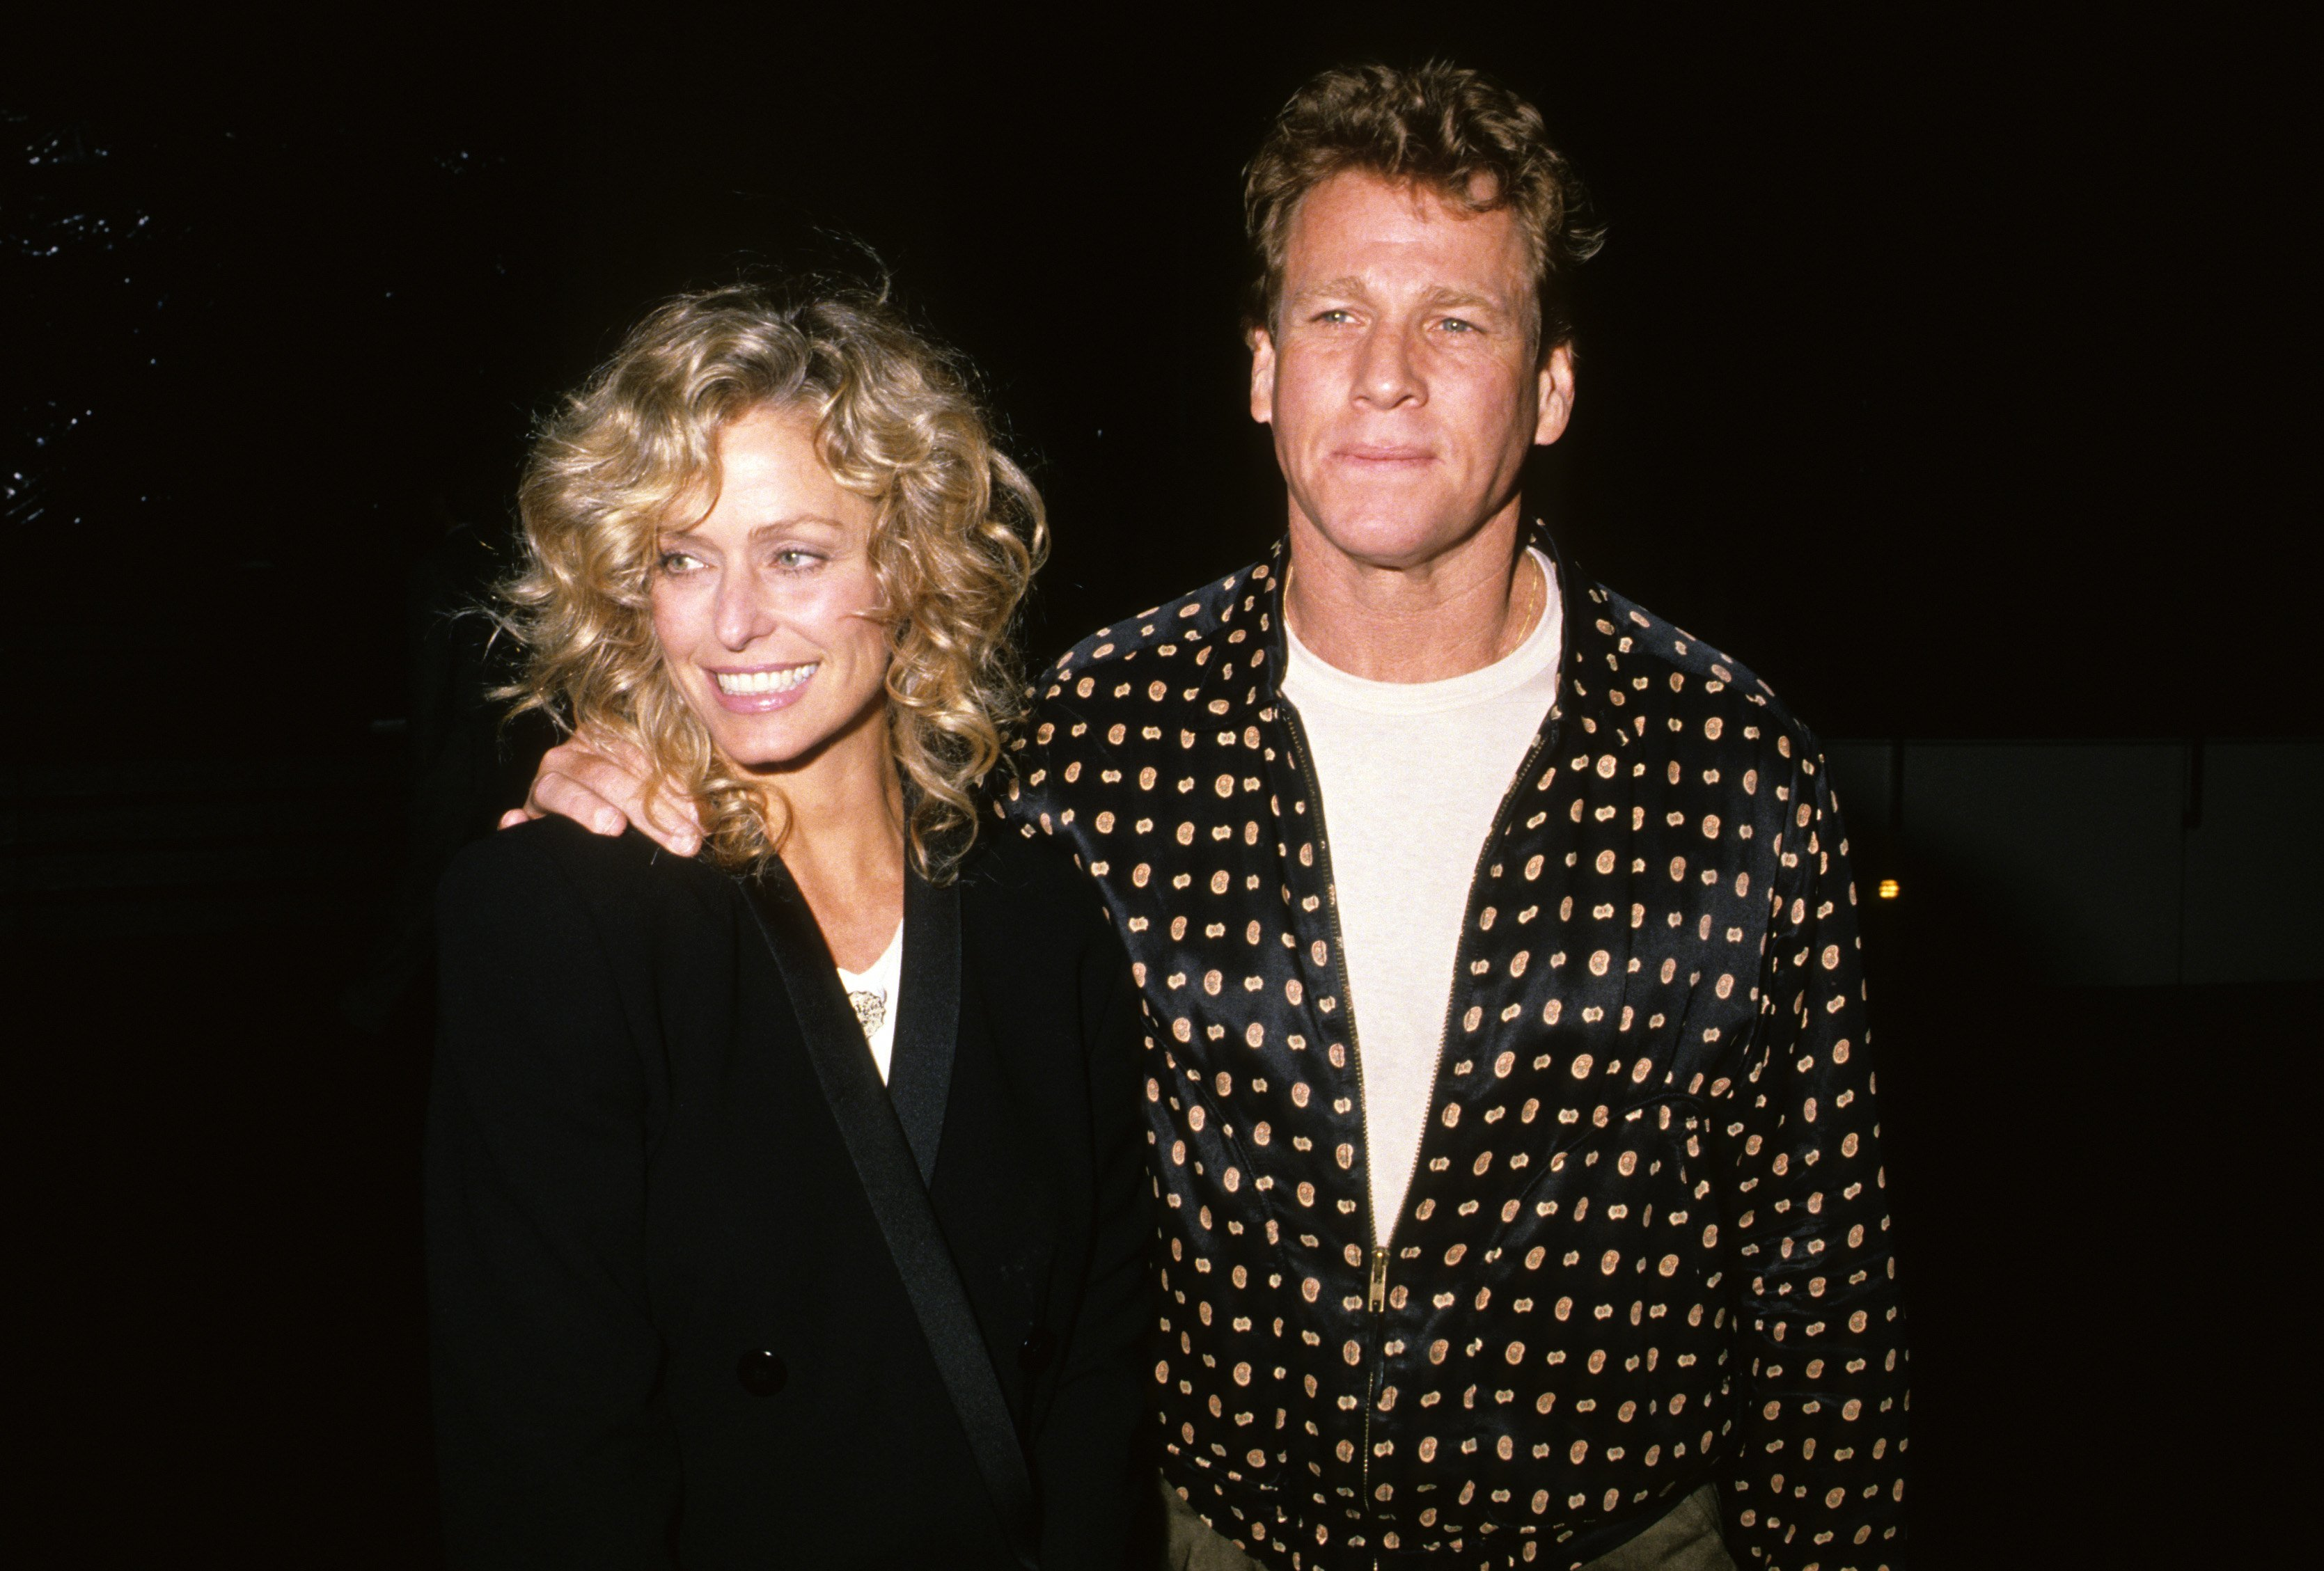 Ryan O'Neal and Farrah Fawcett. | Source: Getty Images